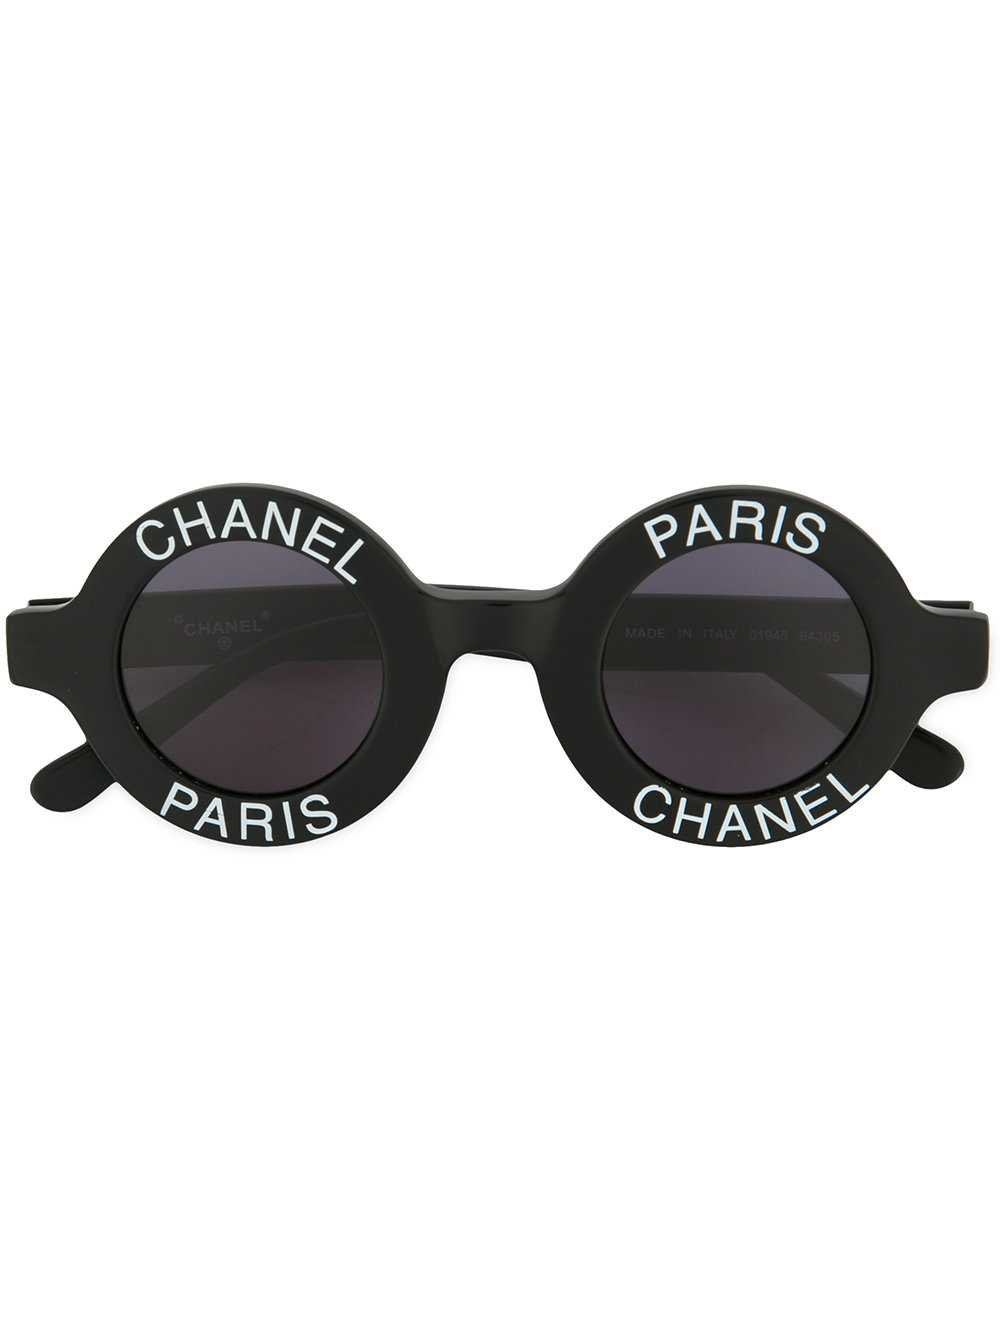 Chanel Vintage Logo Stamp Round Sunglasses - Farfetch